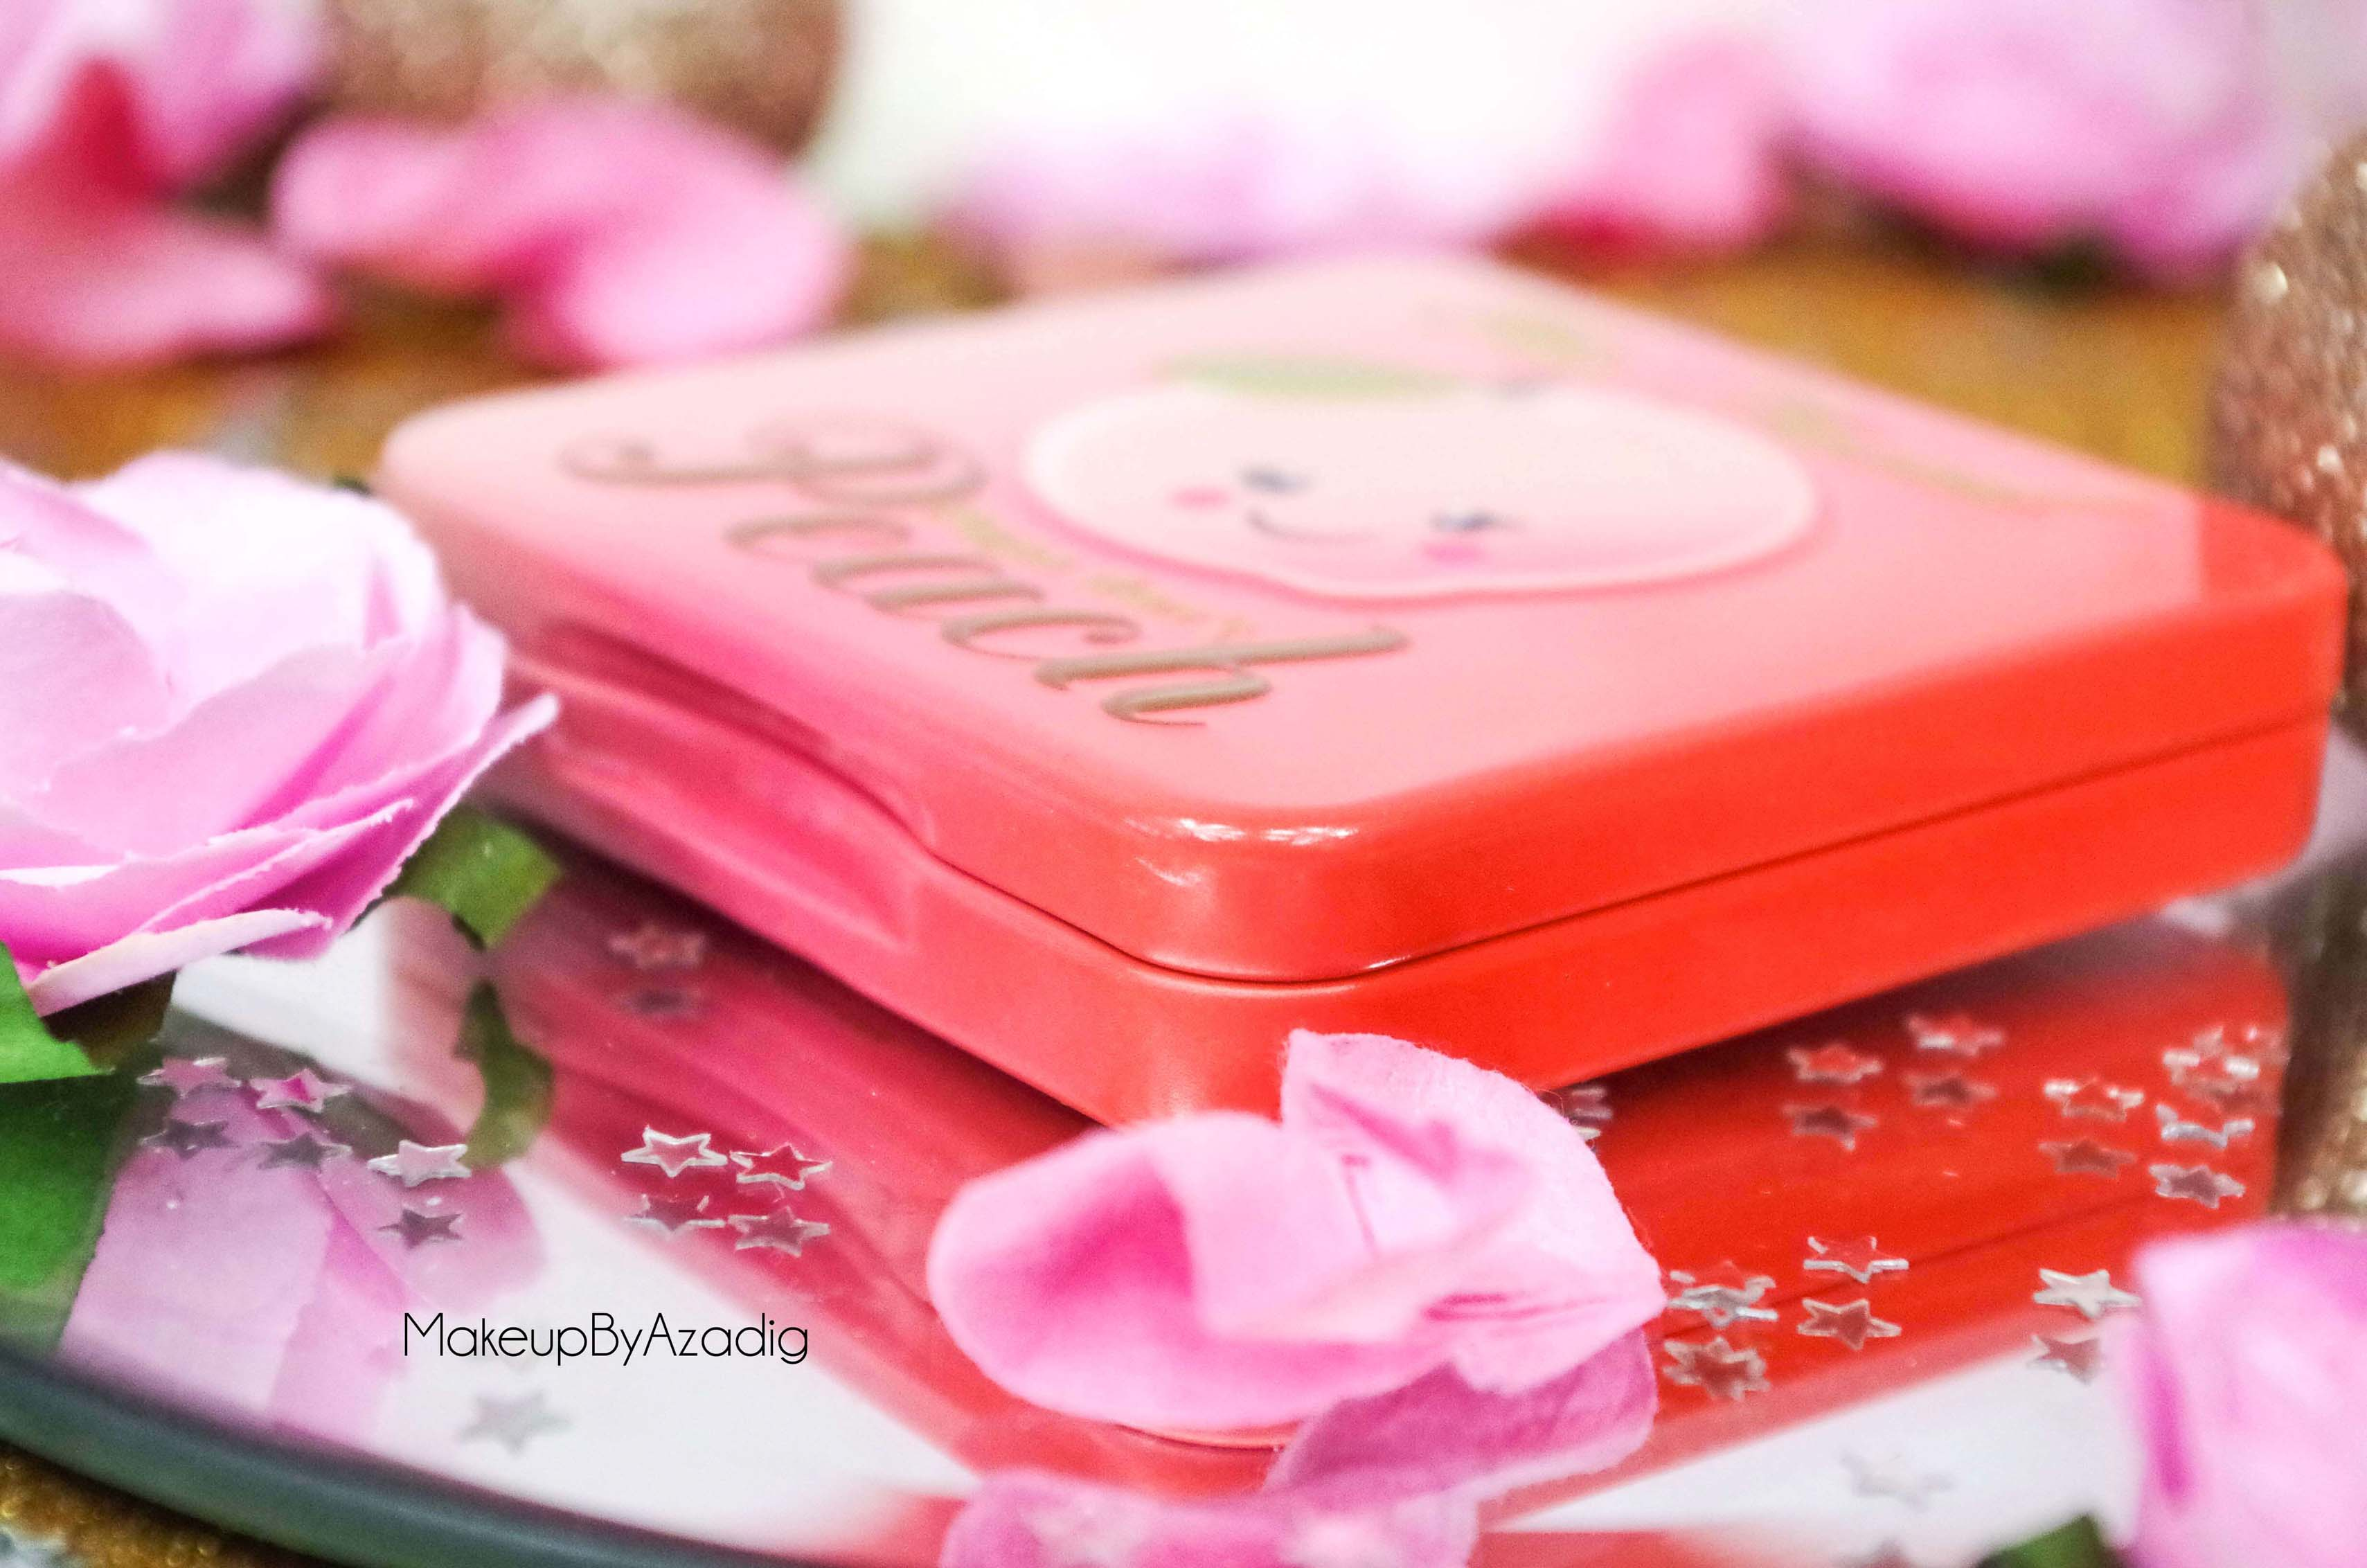 review-nouveau-blush-papa-dont-peach-too-faced-sephora-ete-printemps-paris-sweet-peach-swatch-avis-makeupbyazadig-palette-2